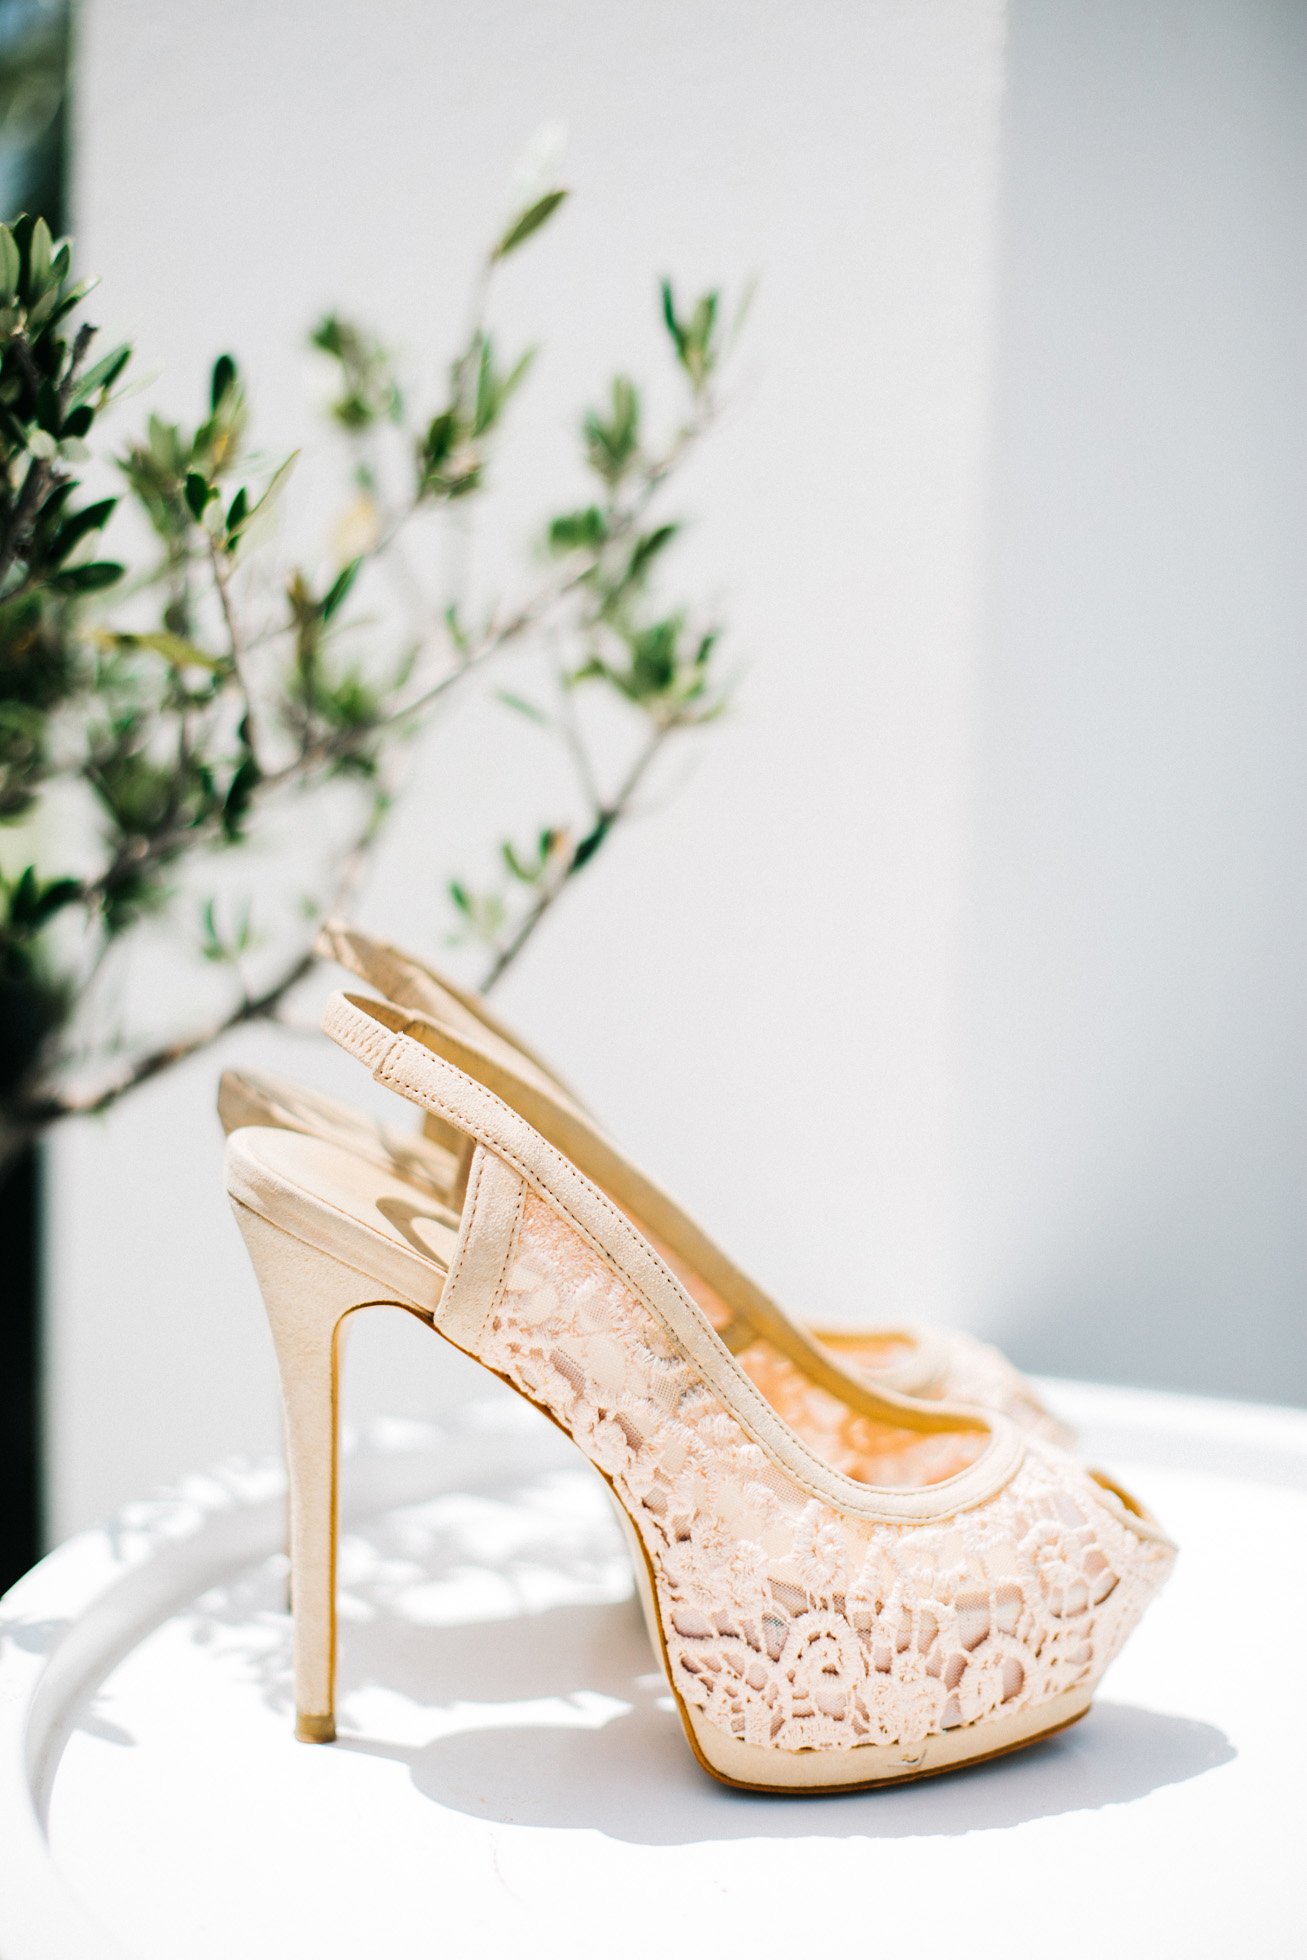 Wedding day image of a high heeled bridal shoes standing on white table near an olive tree.